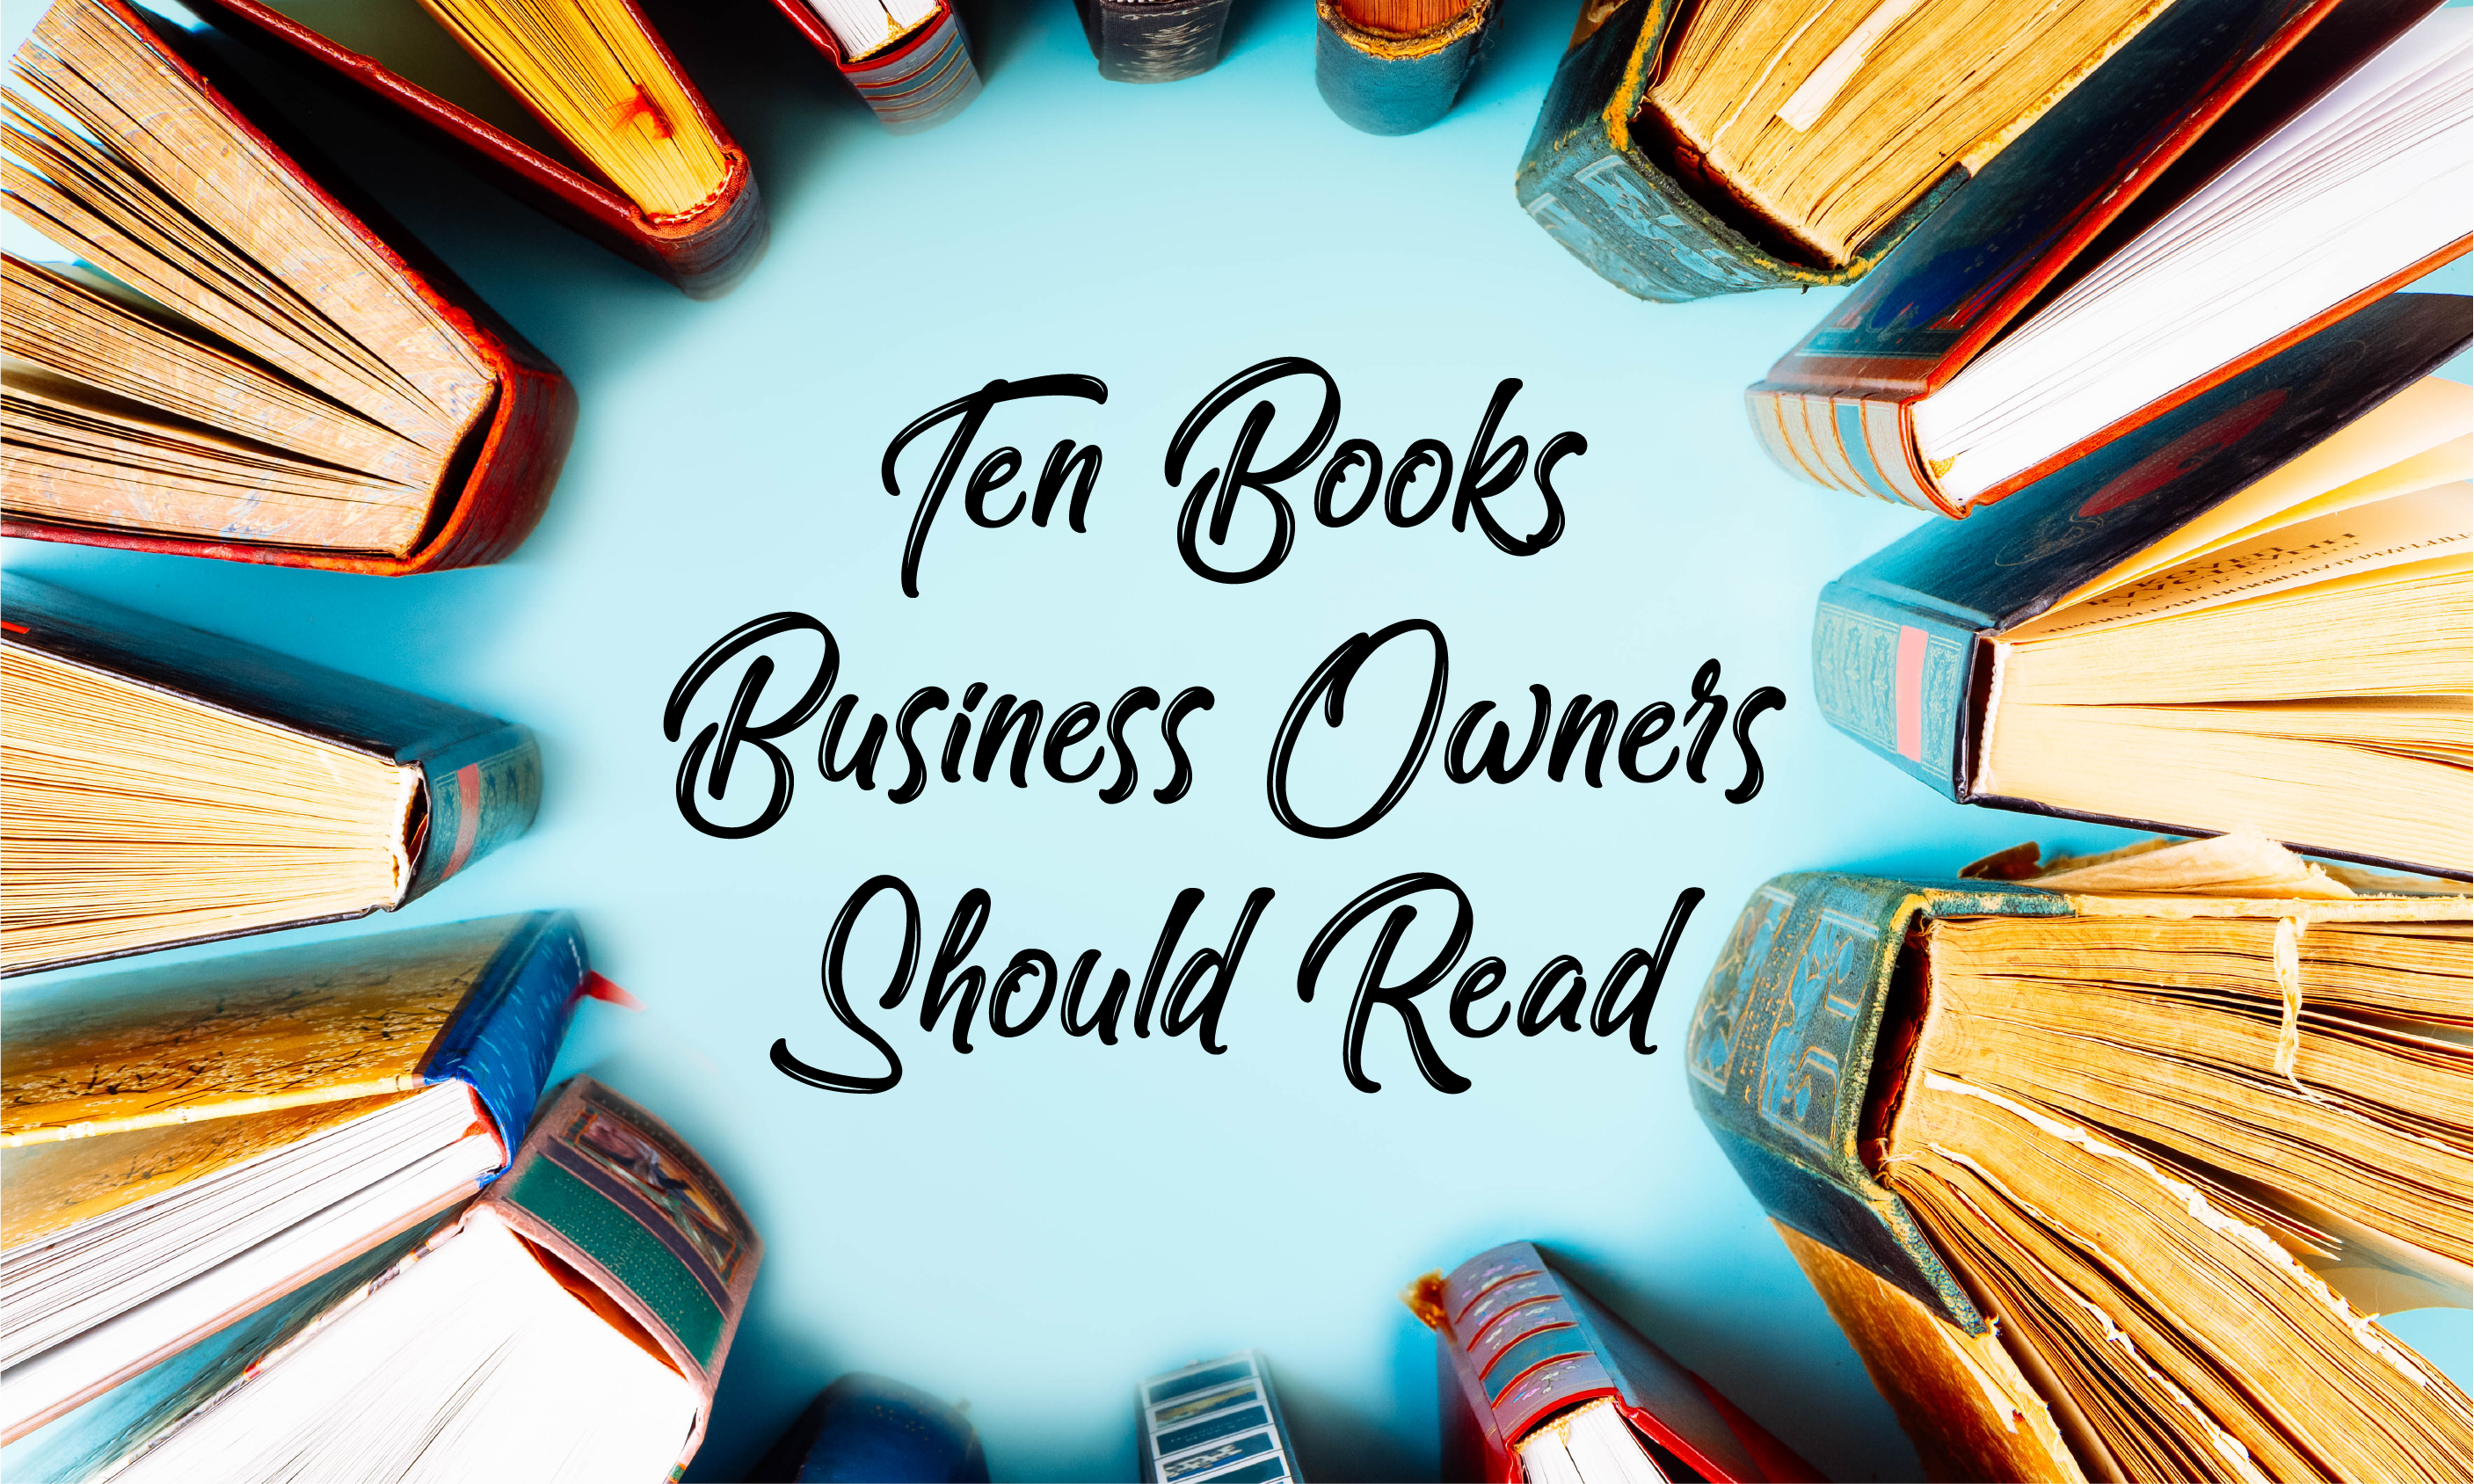 Ten Books Business Owners Should Read